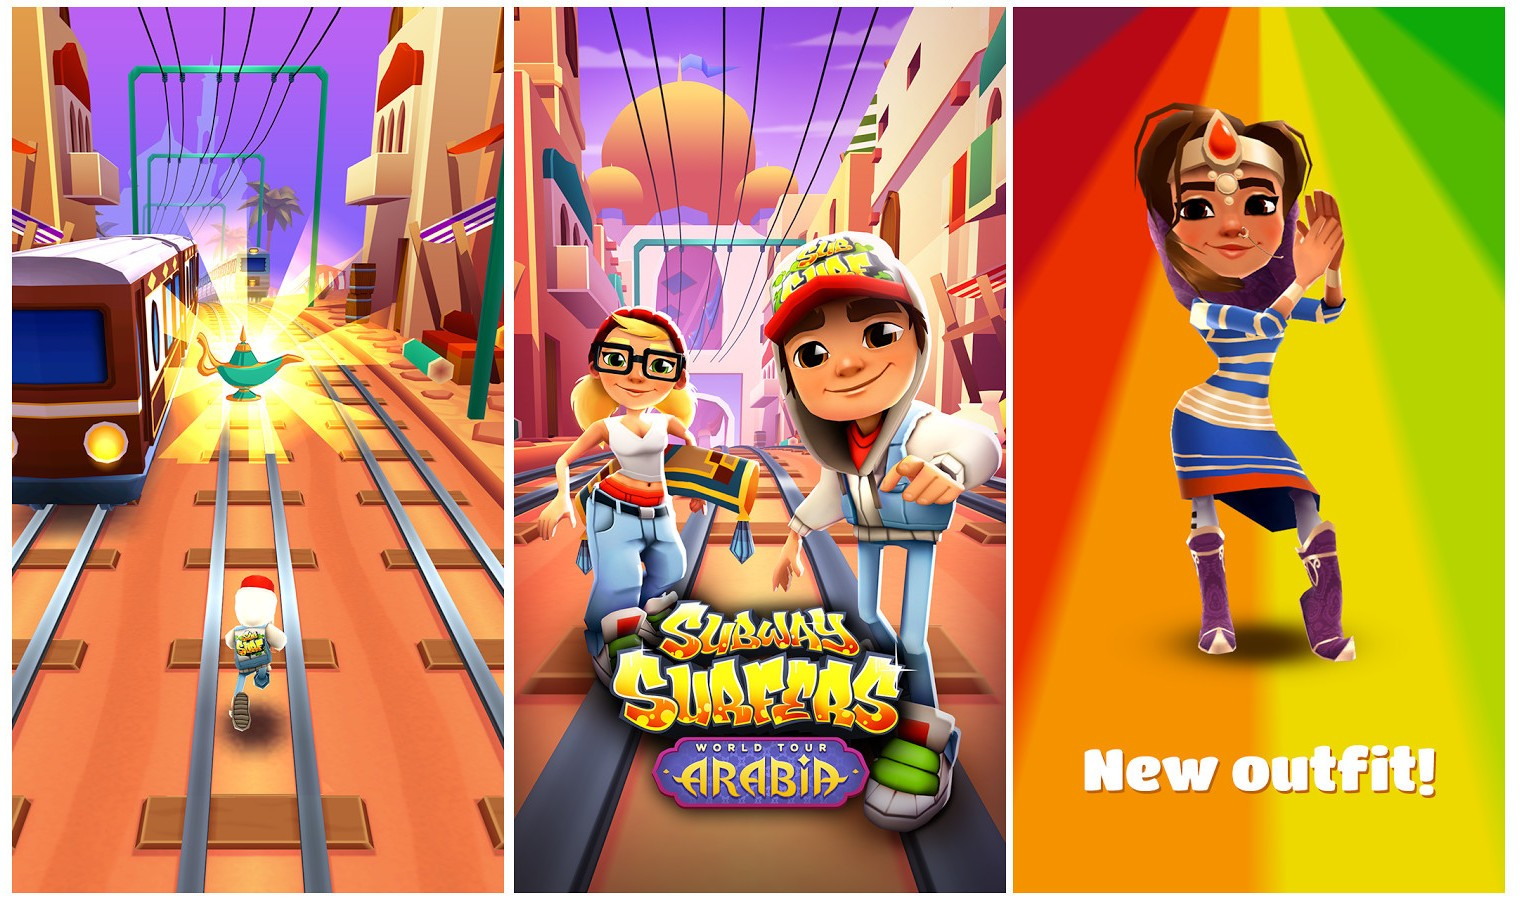 Subway surfers for windows phone, android, ios adds world tour to.